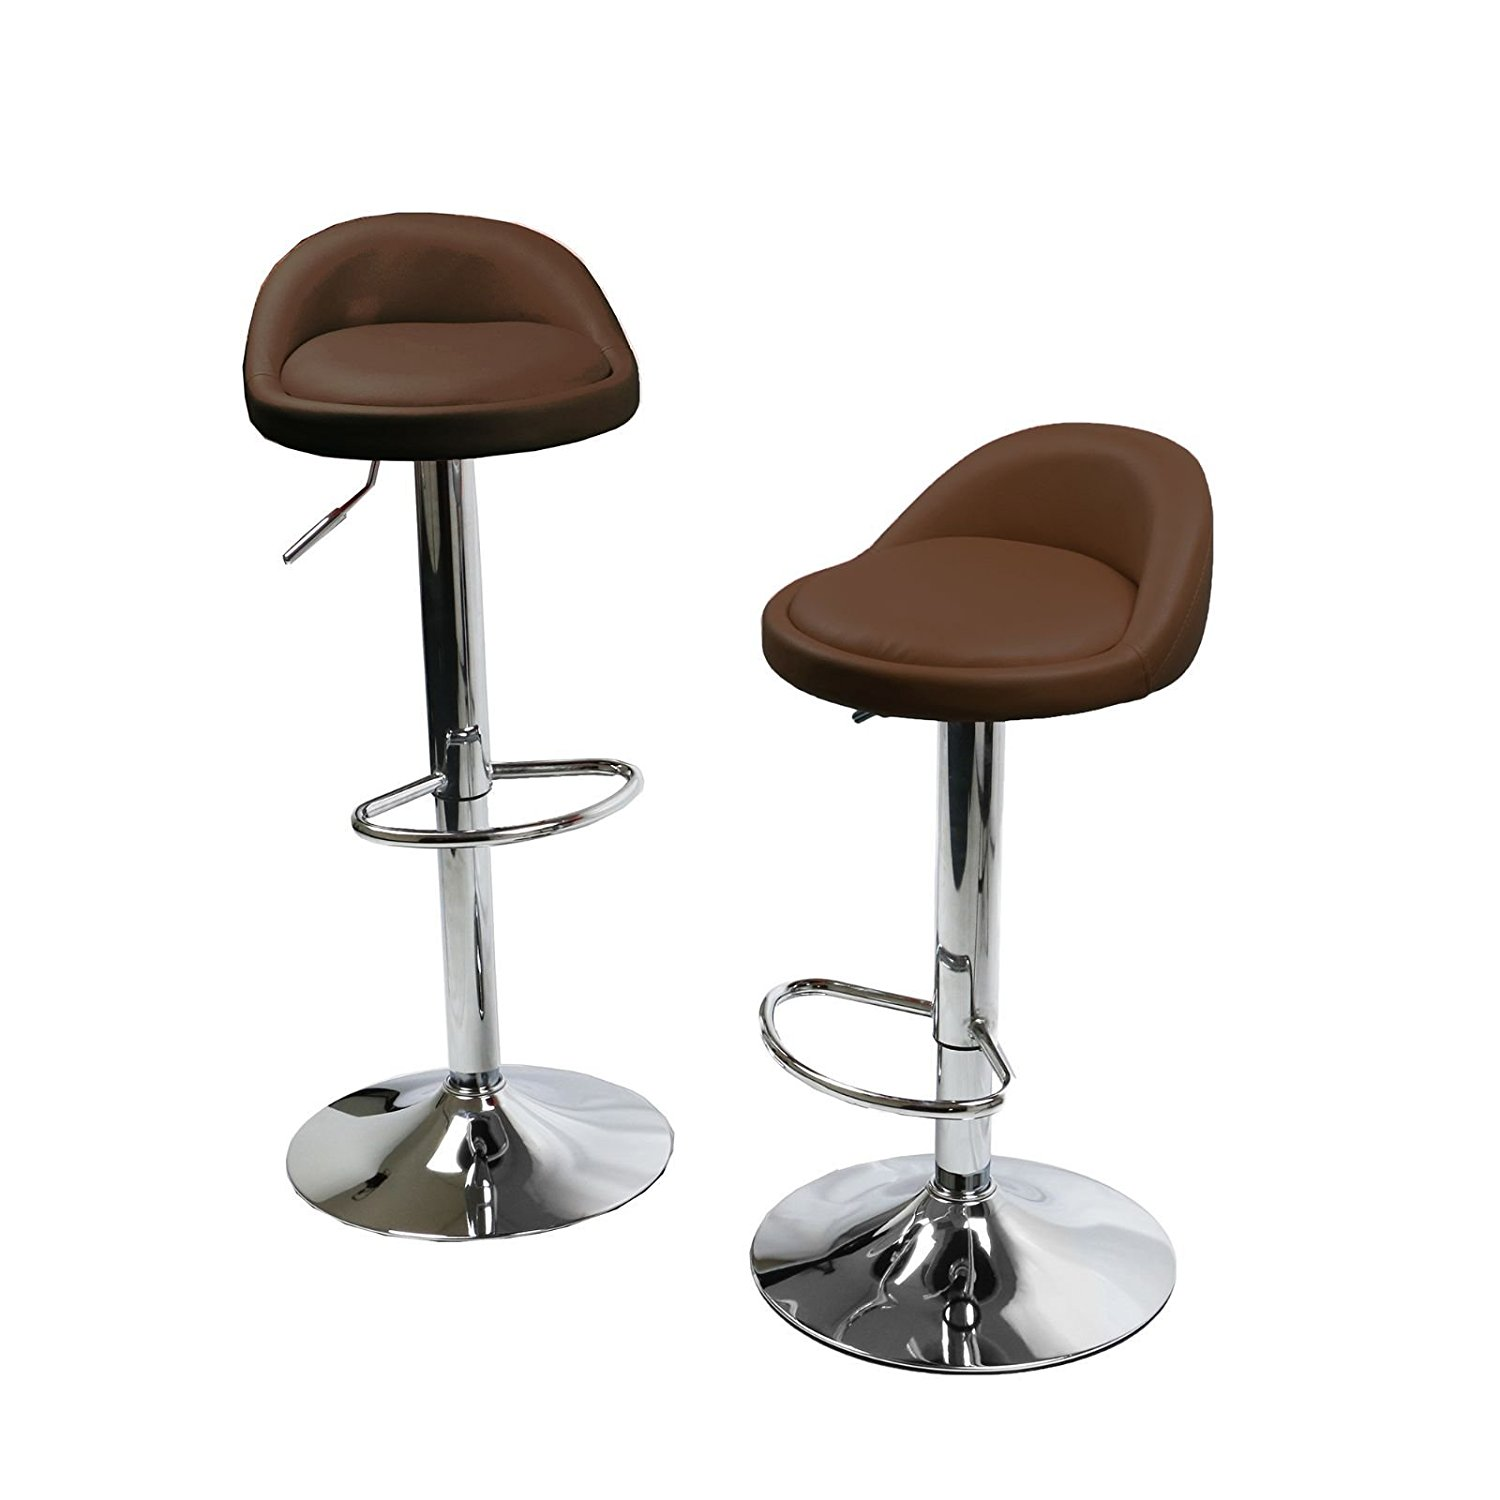 Round Bar Stools Swivel Kitchen Dinning Counter Adjustable